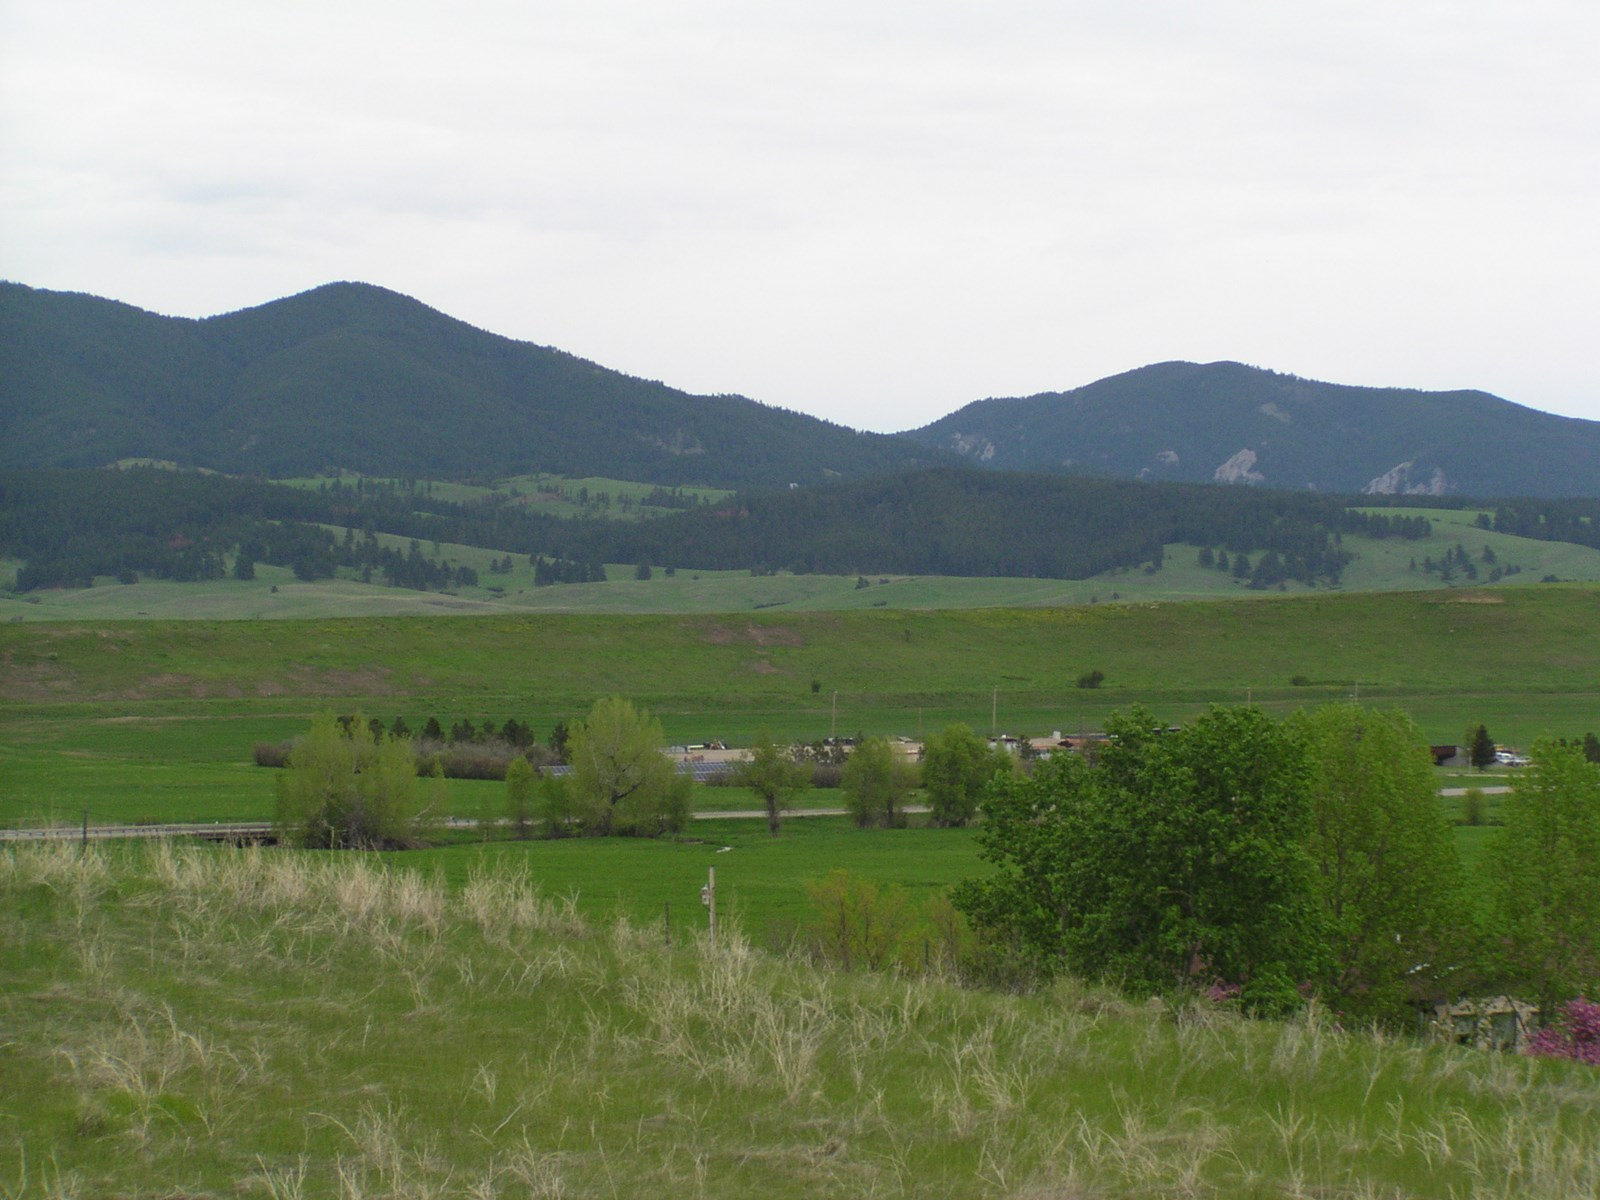 Central Montana Land for Sale - Build Your Dream Home